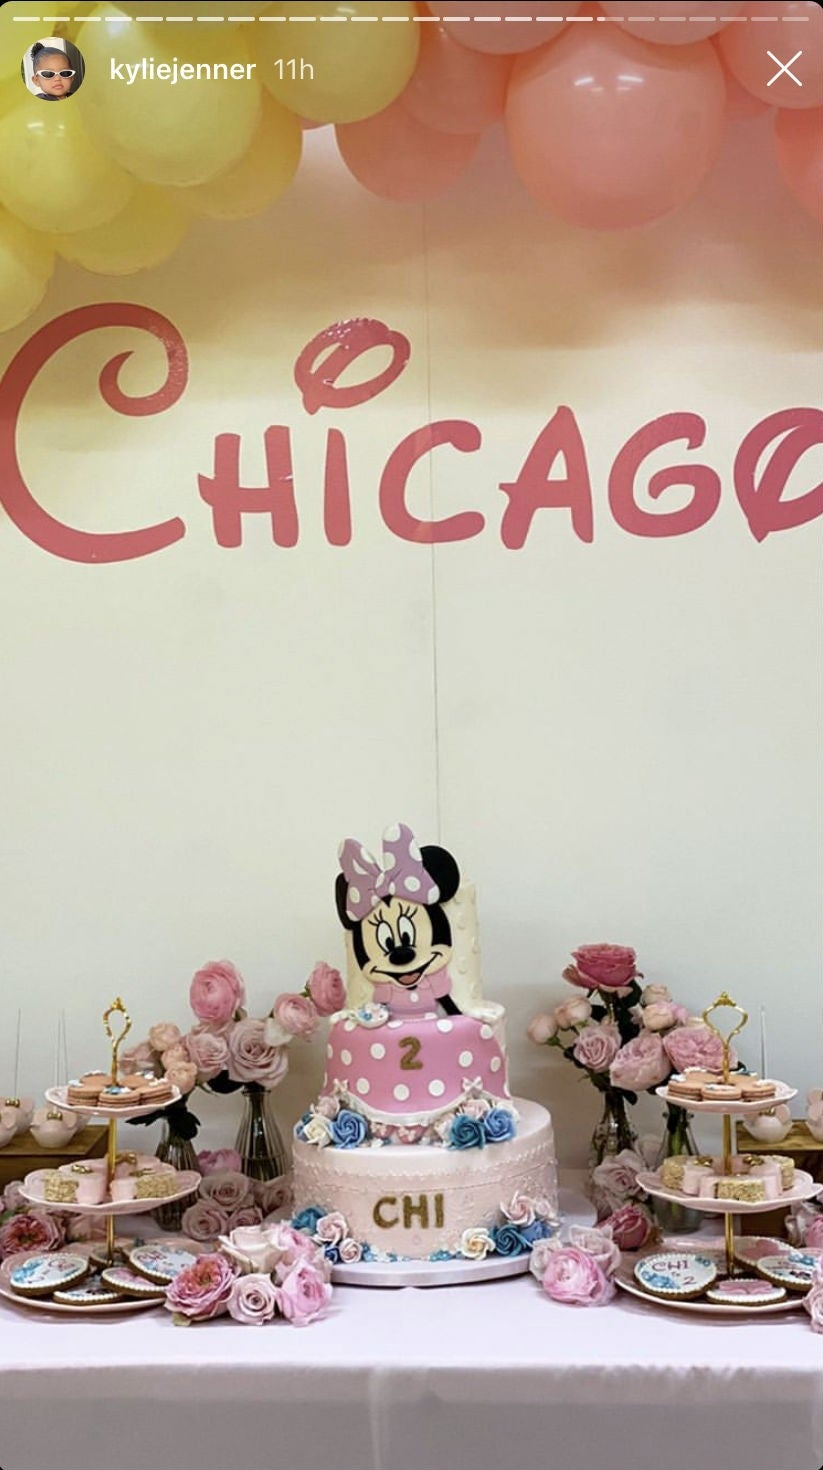 Enjoyable Chicago West Celebrates 2Nd Birthday With Minnie Mouse Themed Funny Birthday Cards Online Hendilapandamsfinfo